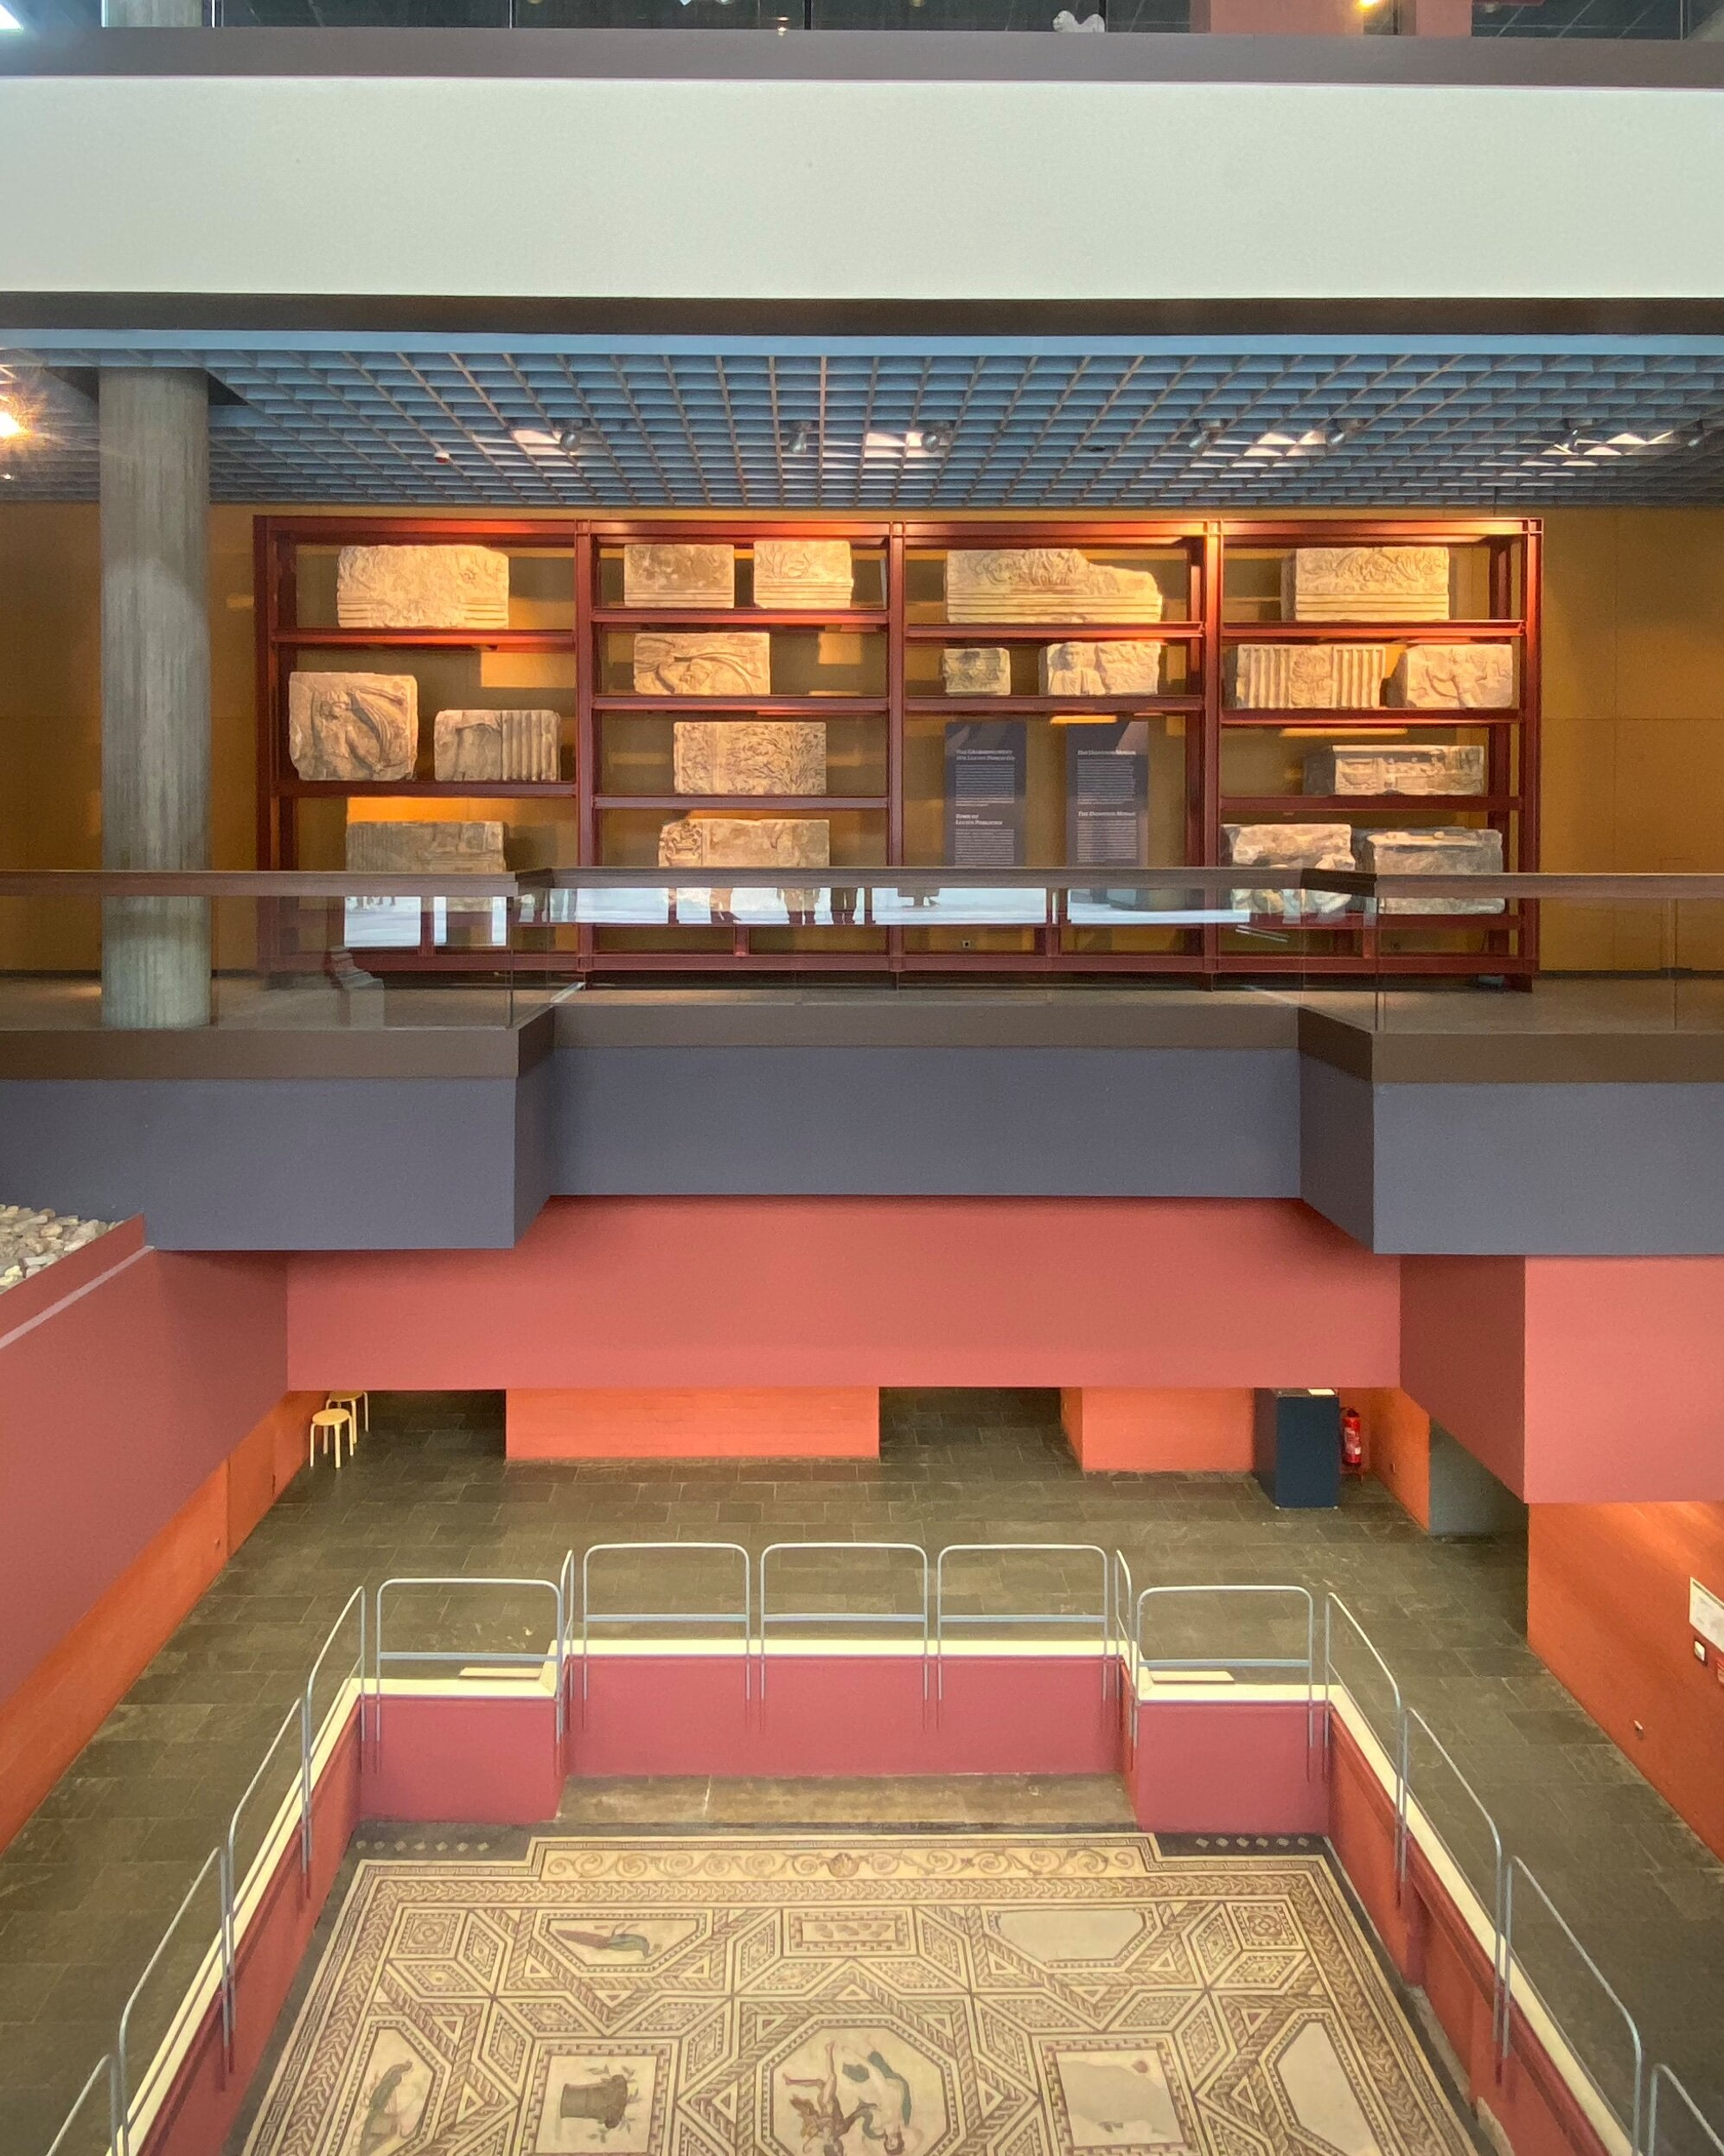 Roman-Germanic museum with its tile floor